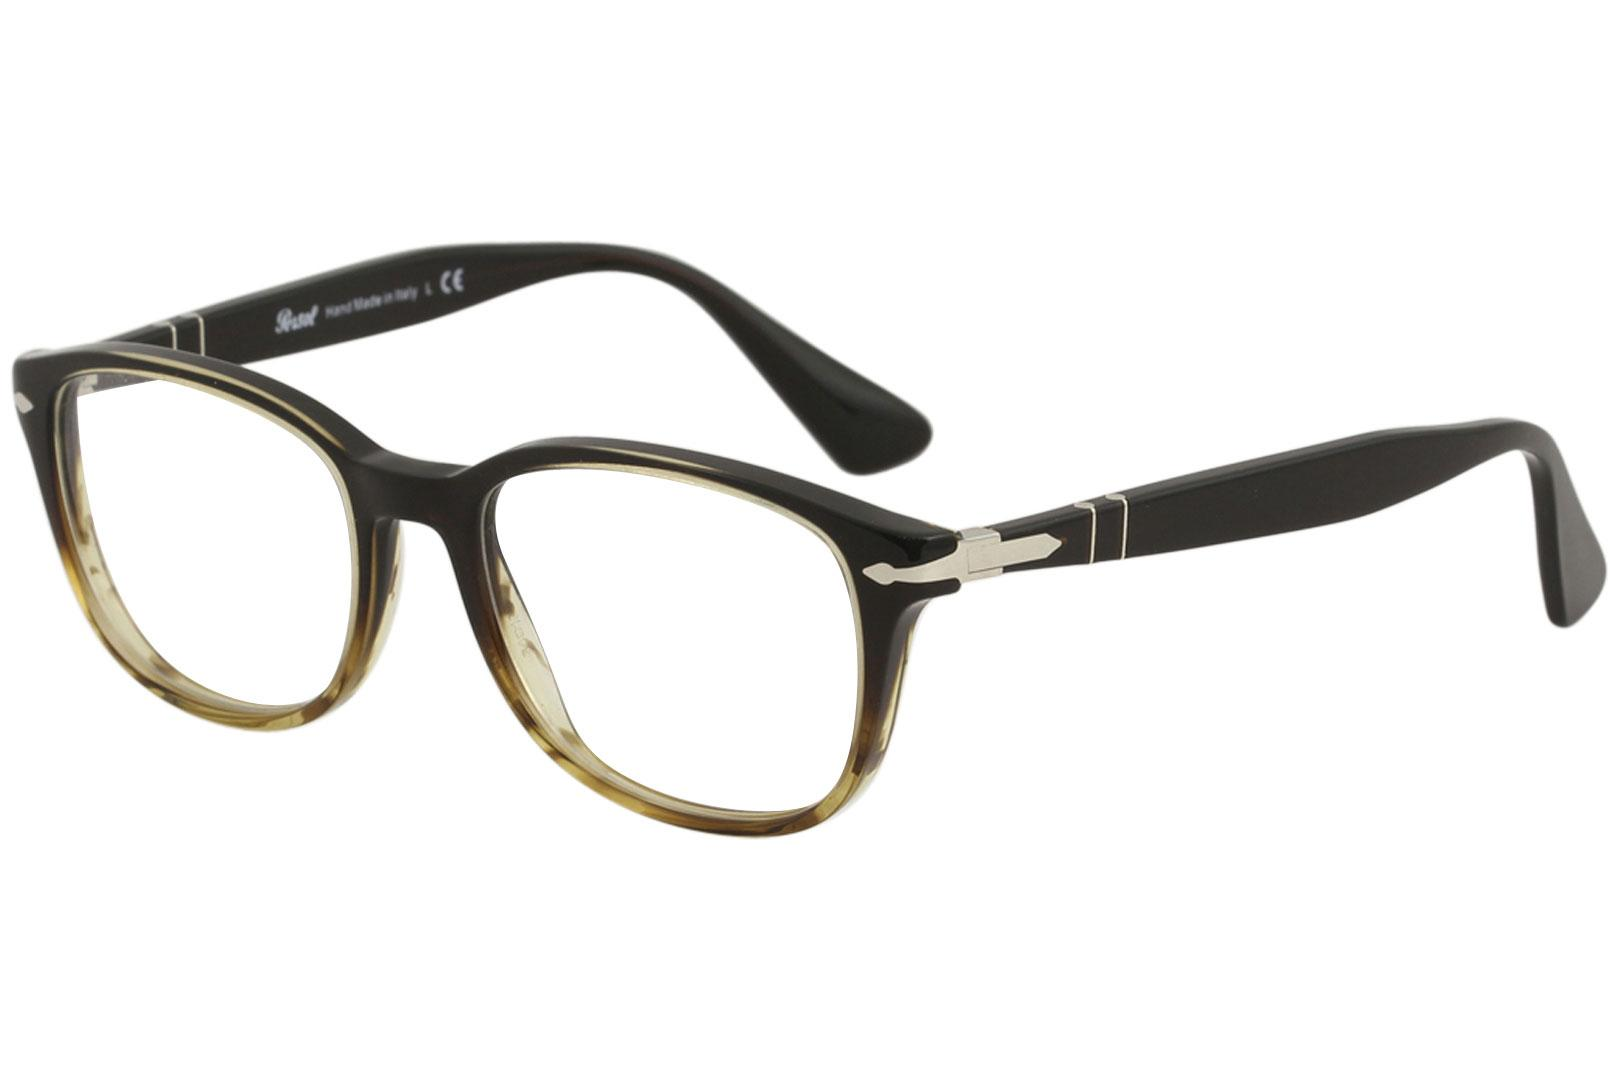 70864aea7f Persol Men s Eyeglasses PO3163V PO 3163 V Full Rim Optical Frame by Persol